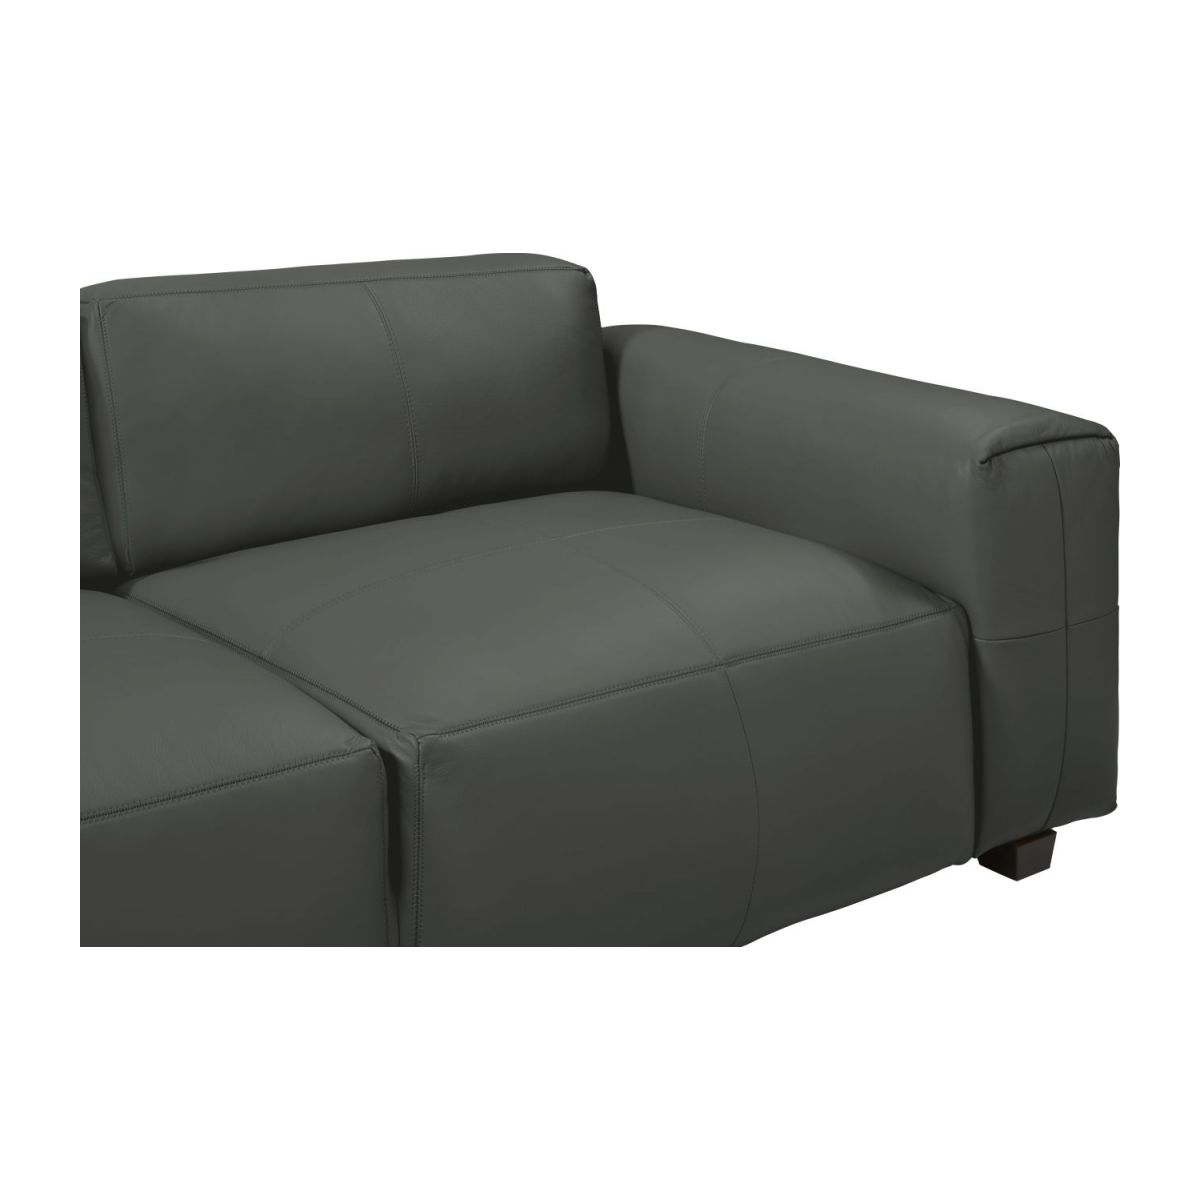 2 seater sofa in Savoy semi-aniline leather, grey n°7